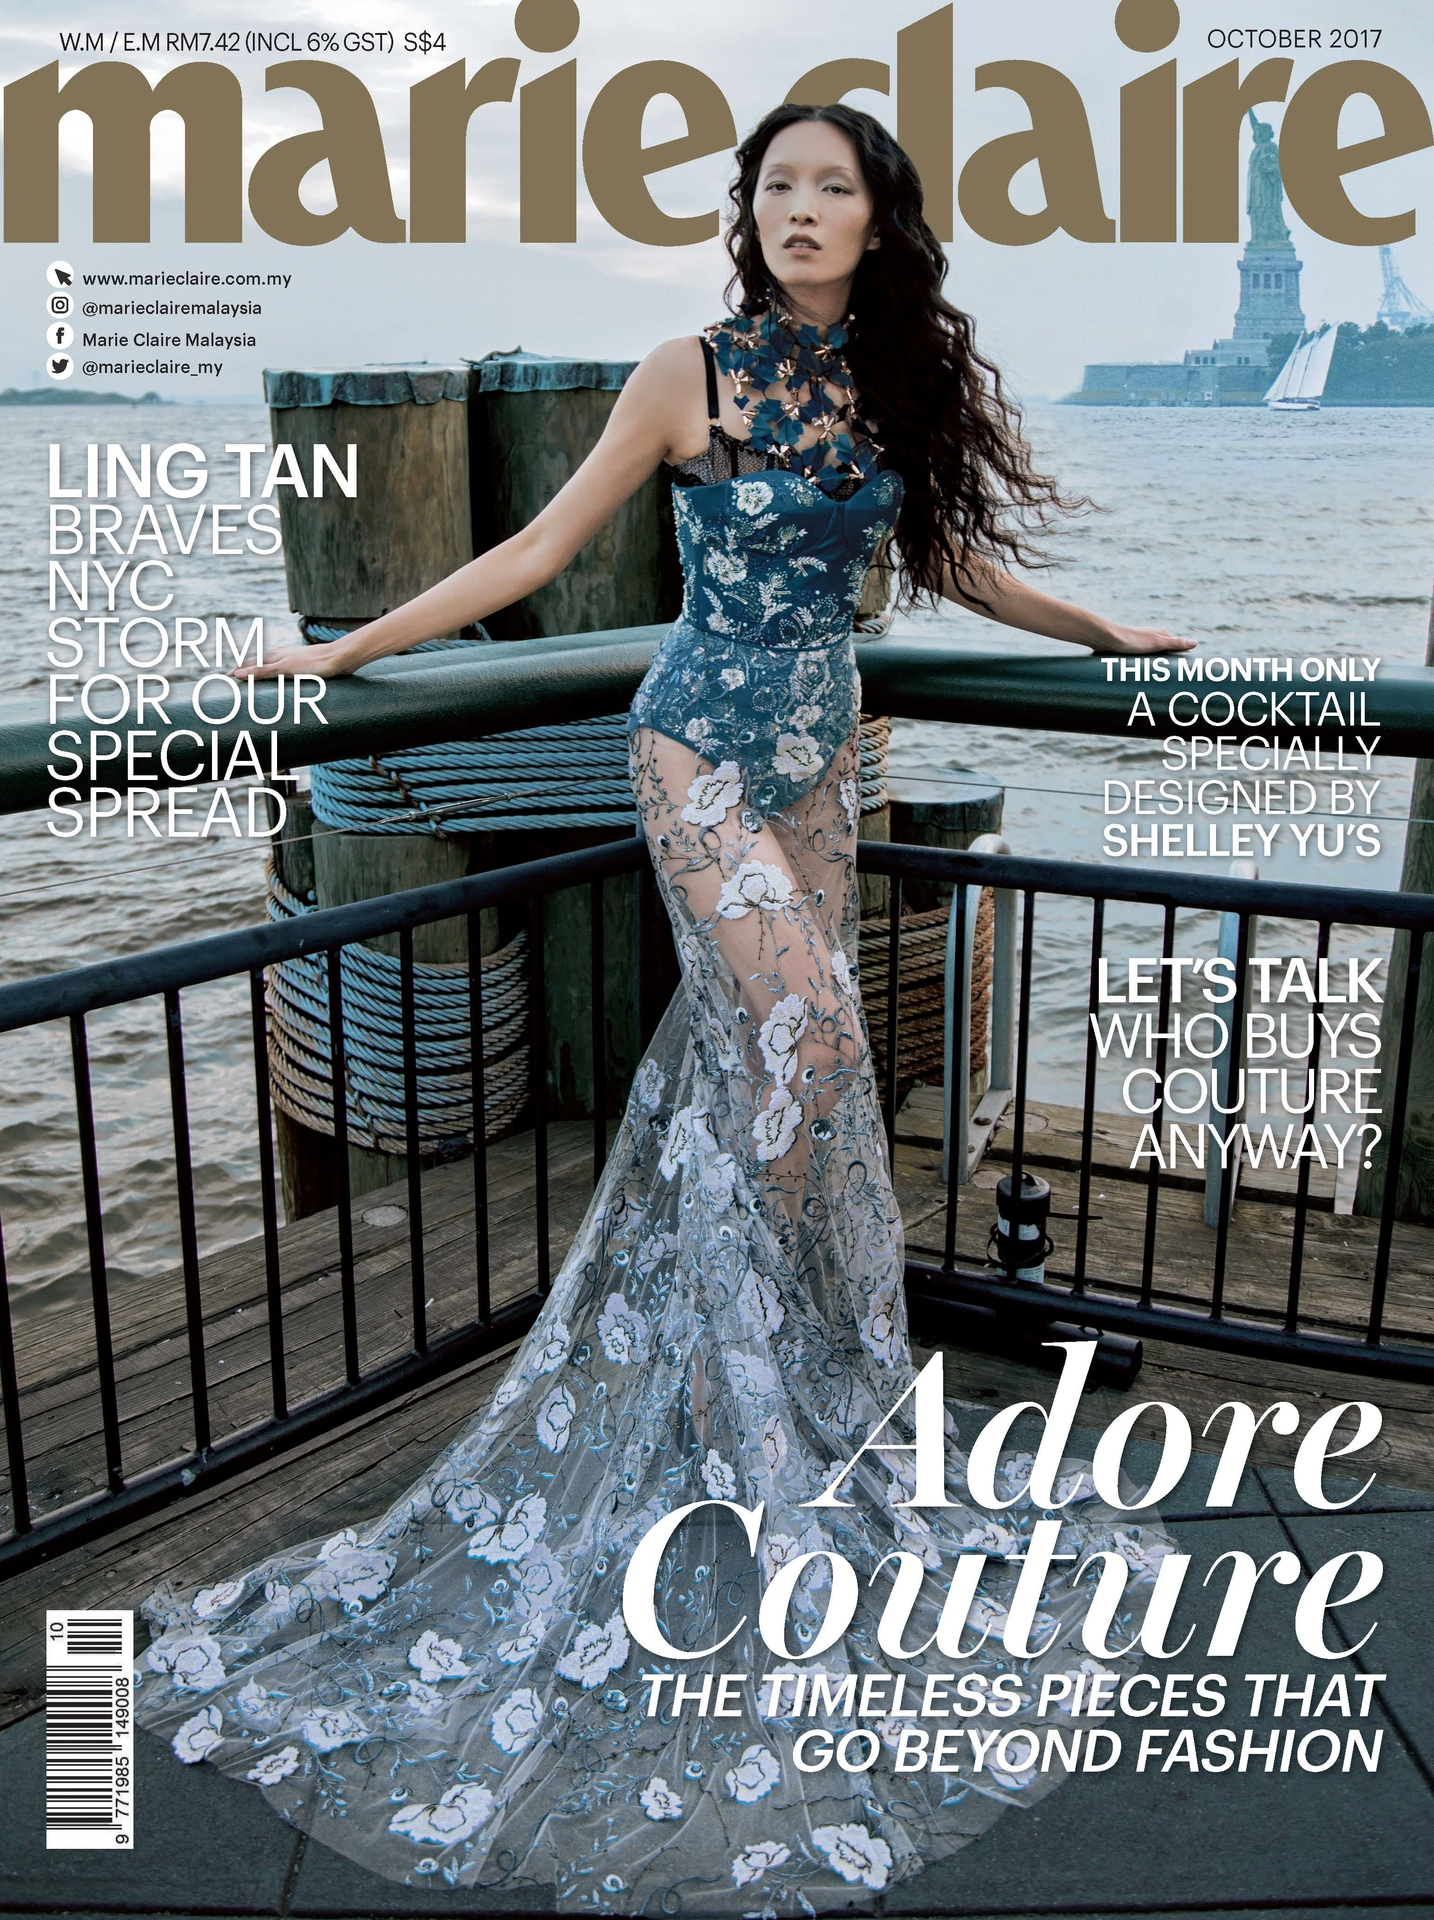 MARIE CLAIRE MALAYSIA COVER OCT 17